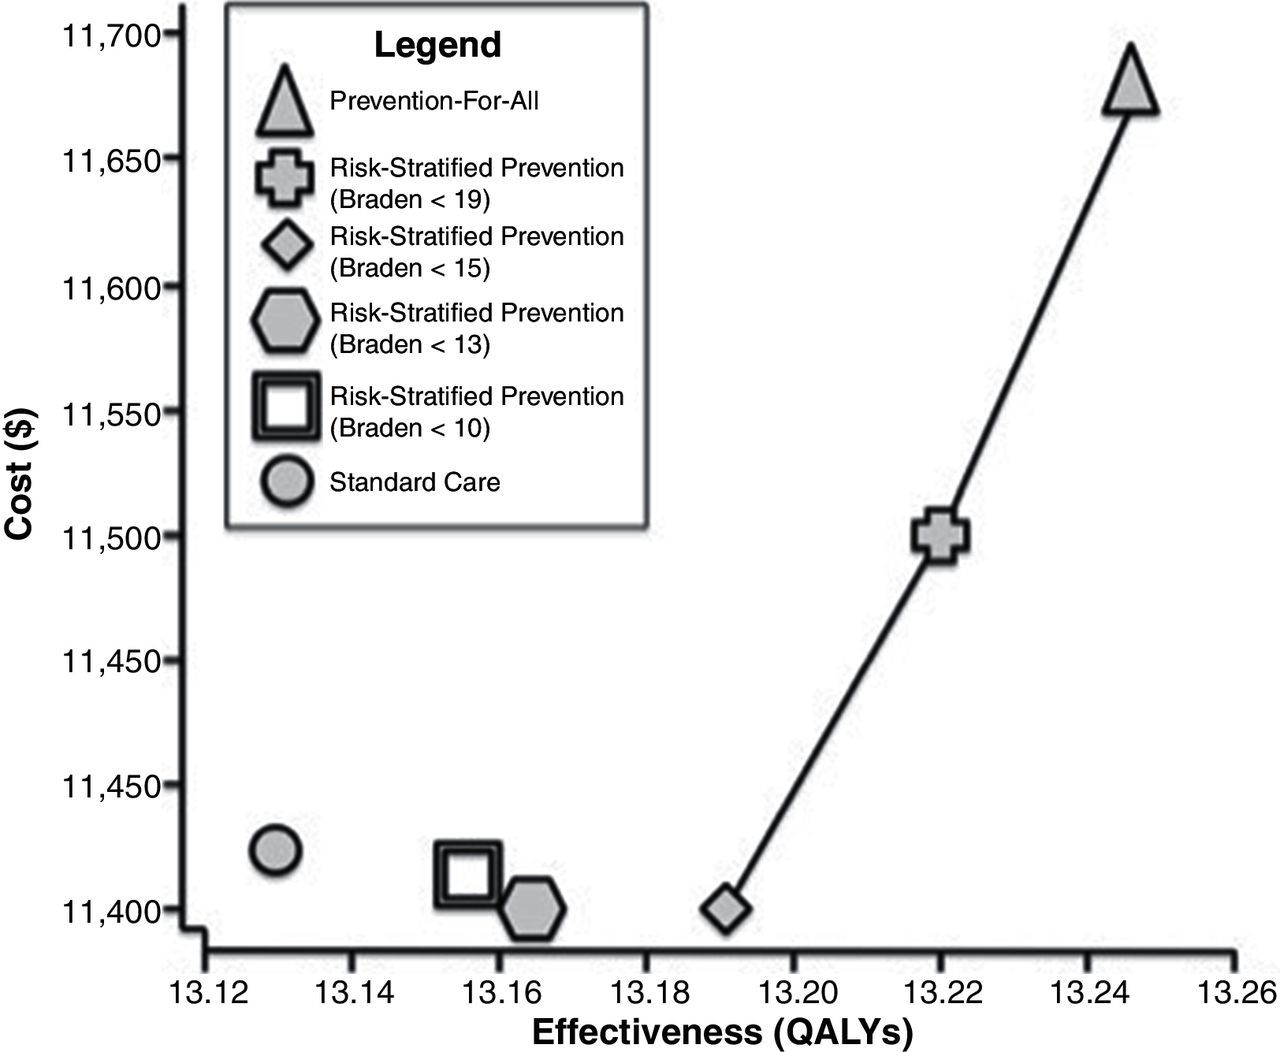 Value of hospital resources for effective pressure injury prevention